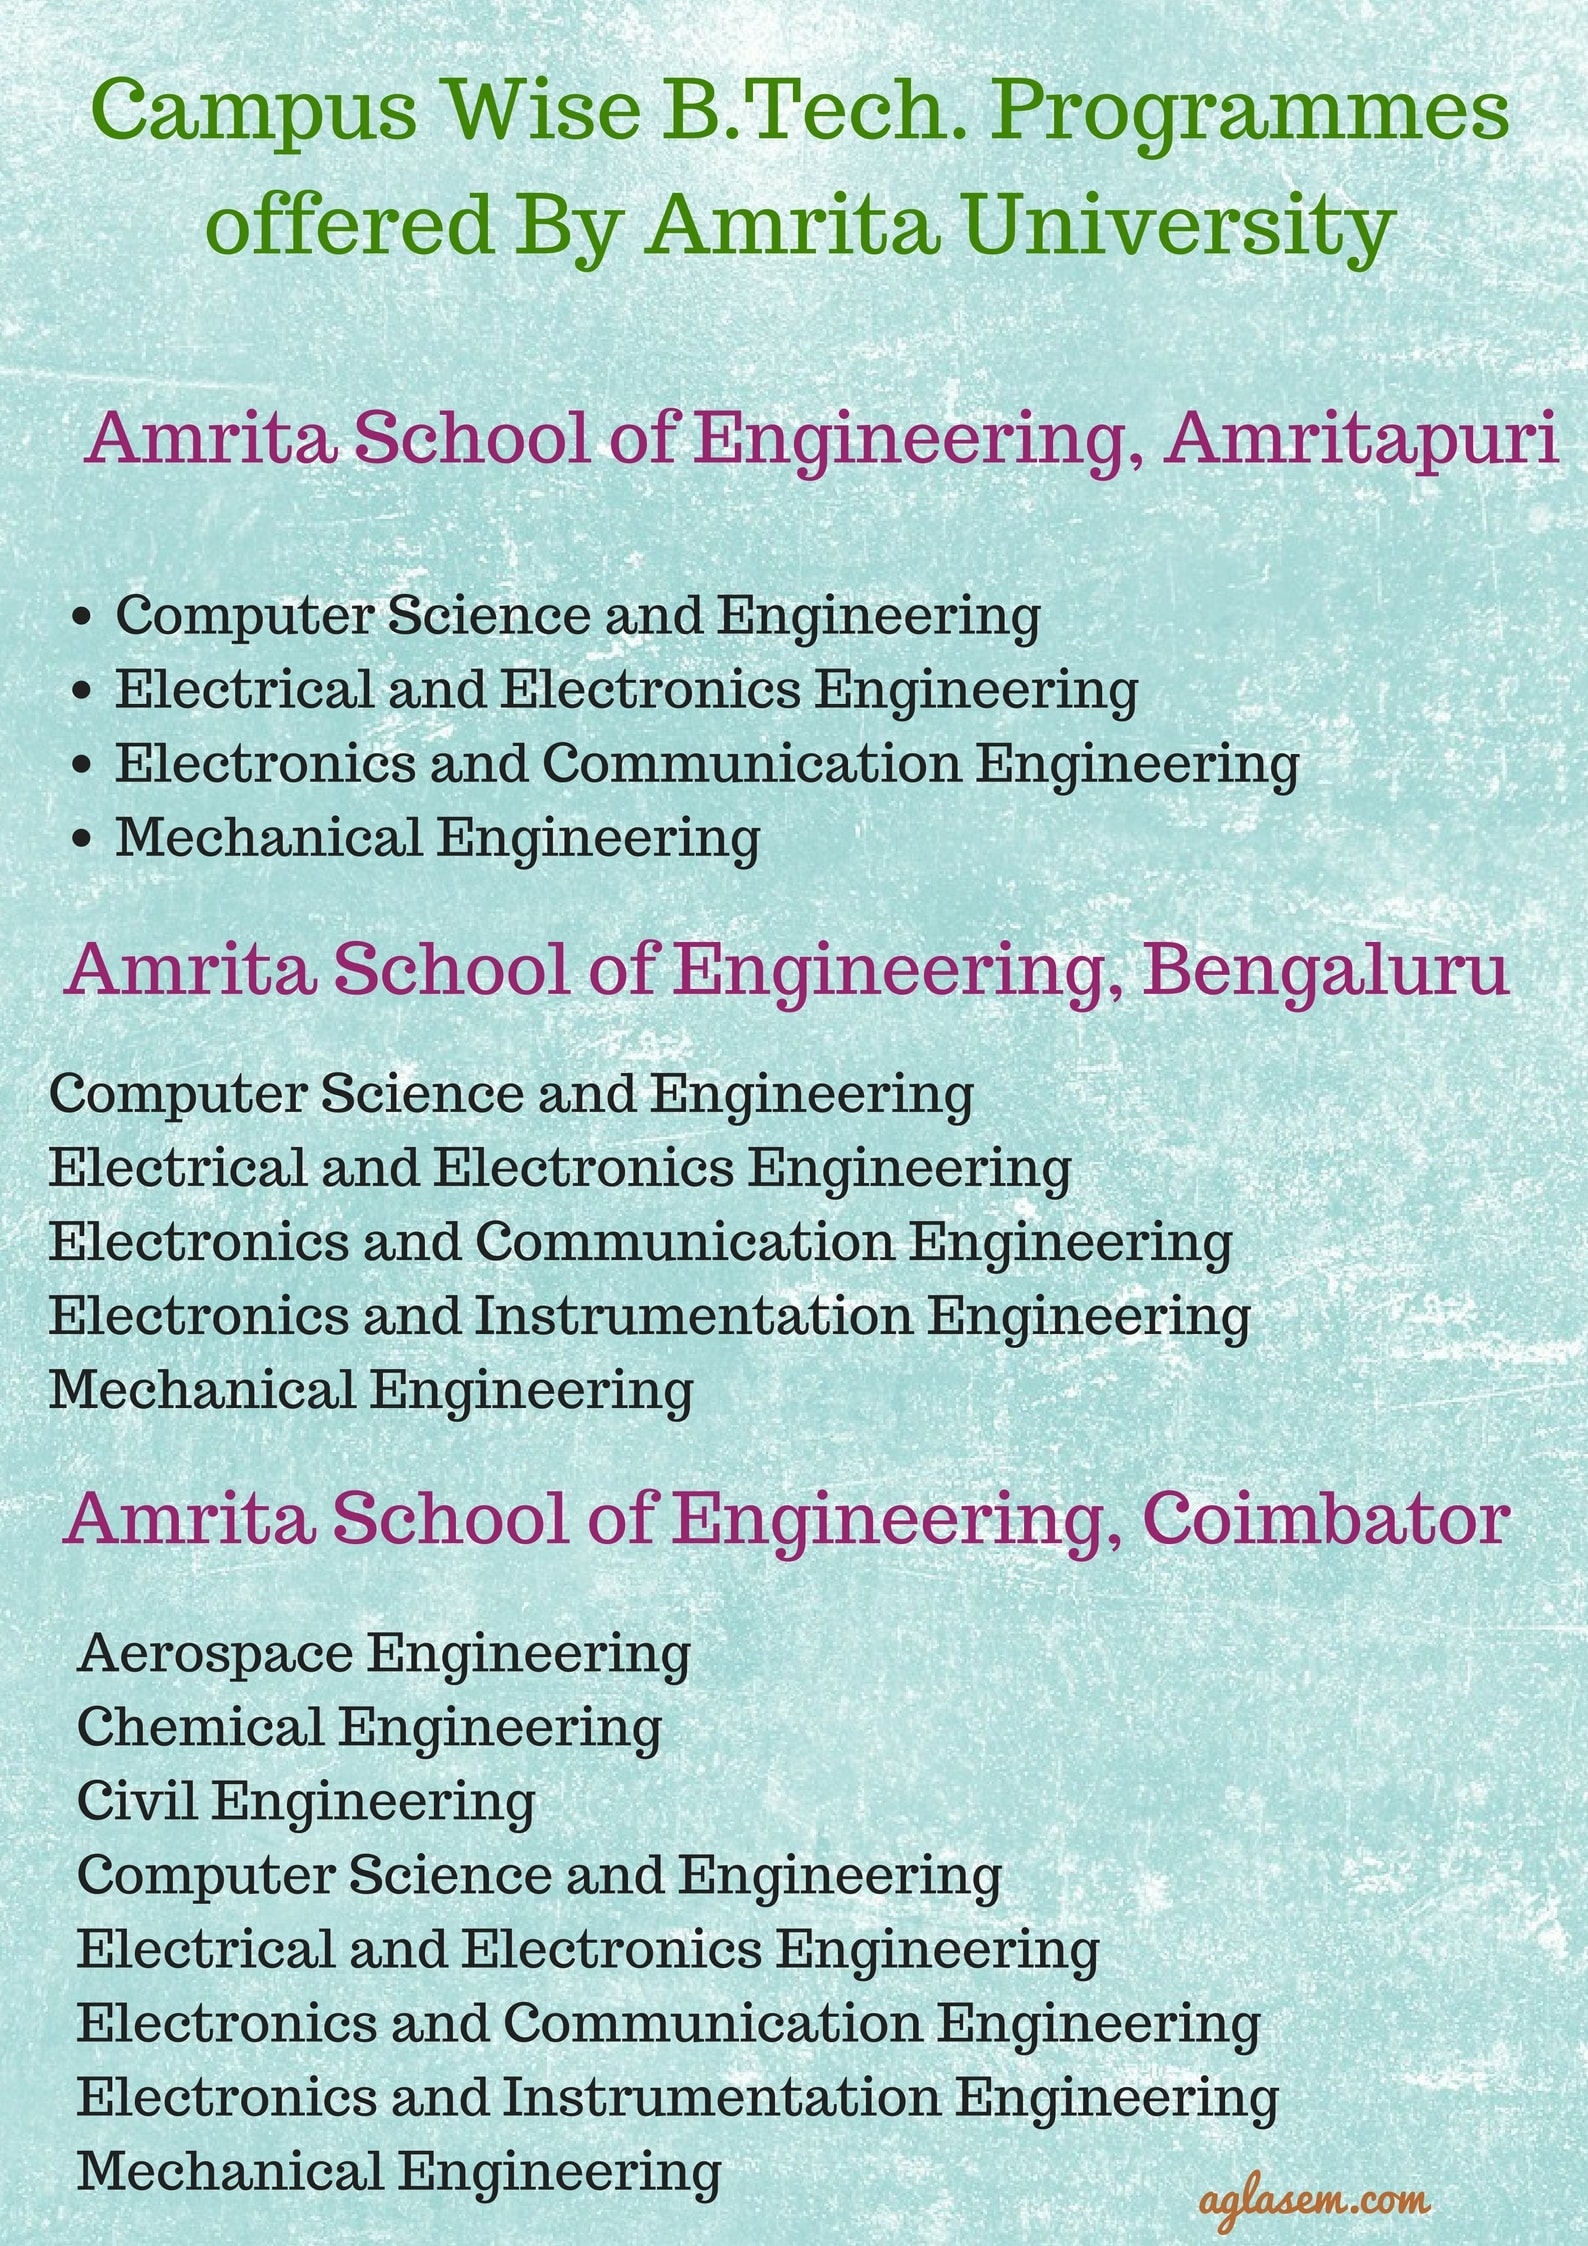 B.Tech Courses in Amrita University